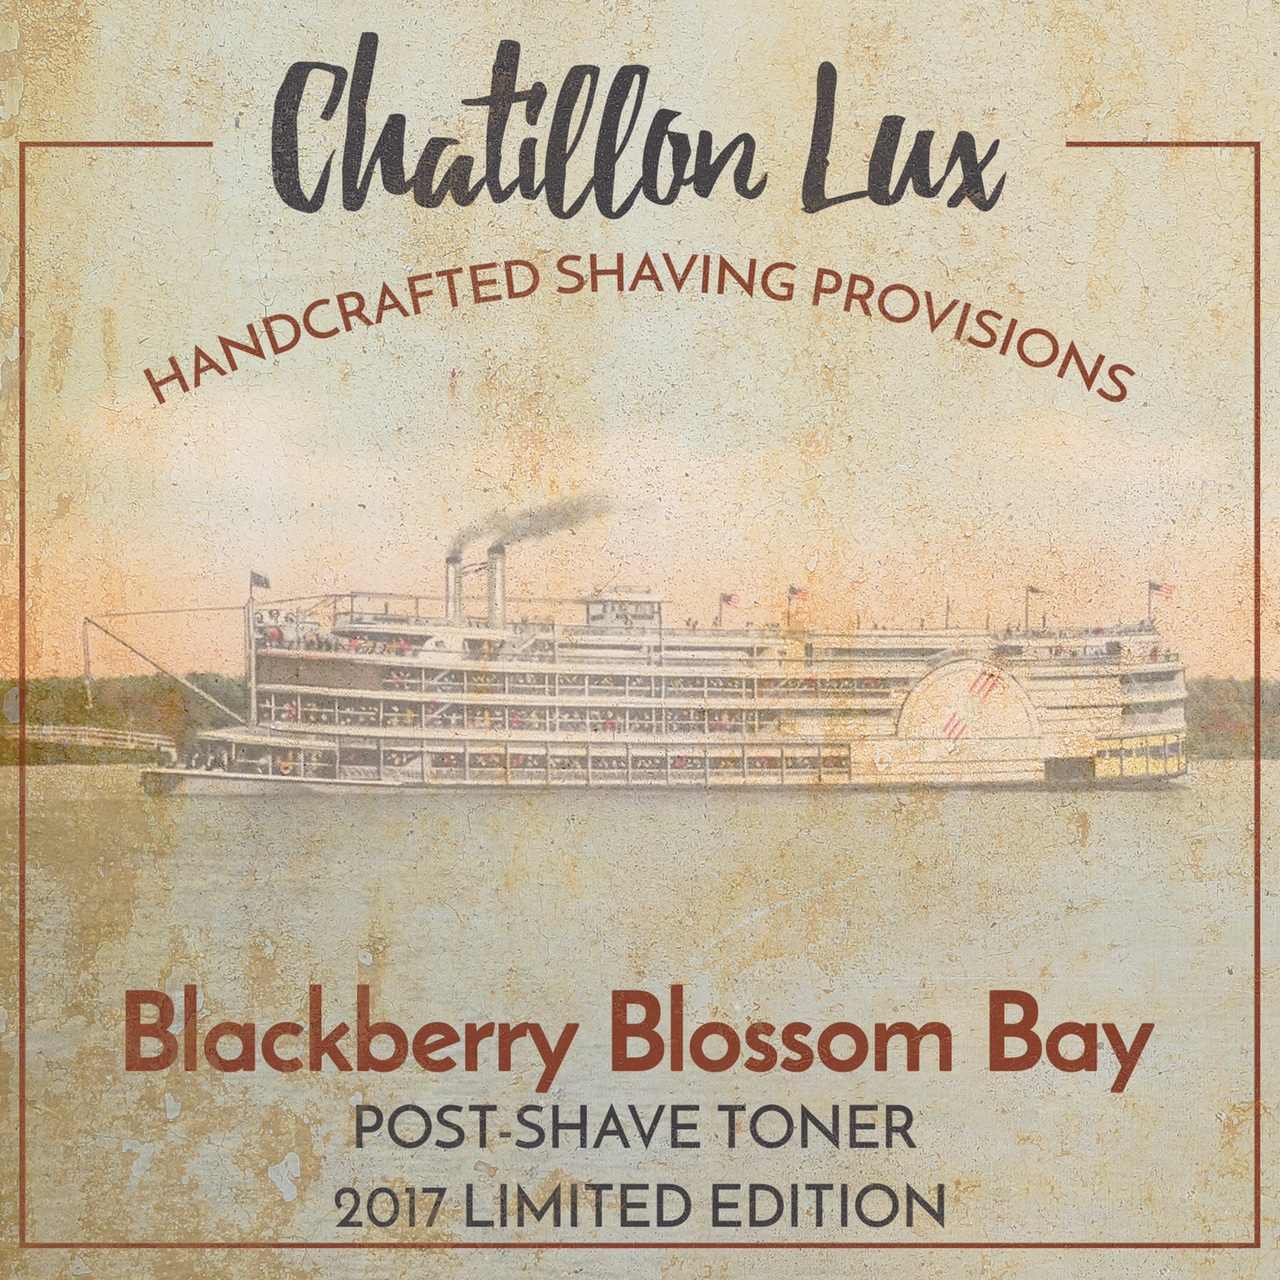 Chatillon Lux - Blackberry Blossom Bay - Toner image